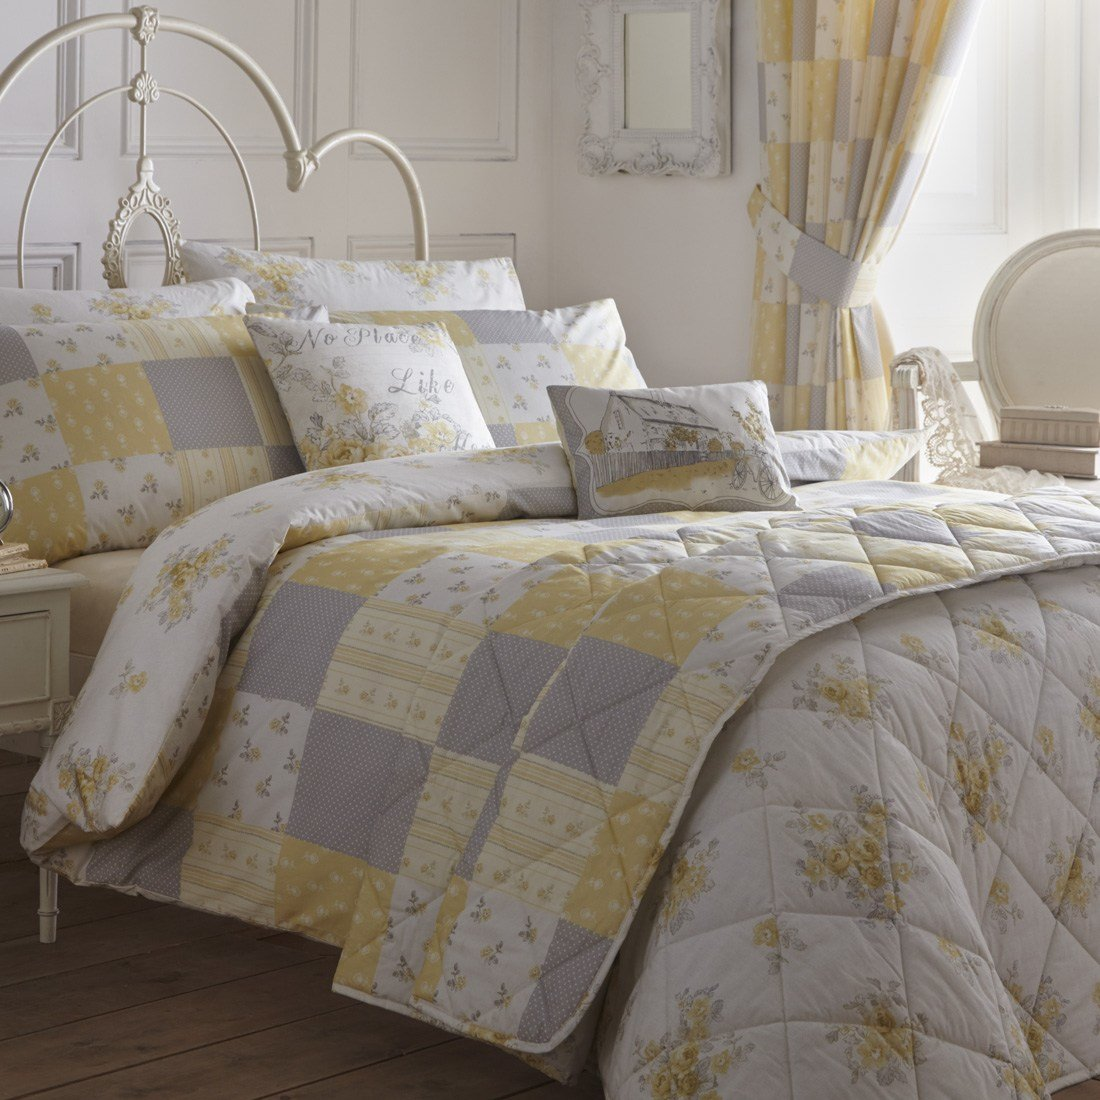 Best Country Style Duvet Covers Uk Sweetgalas With Pictures